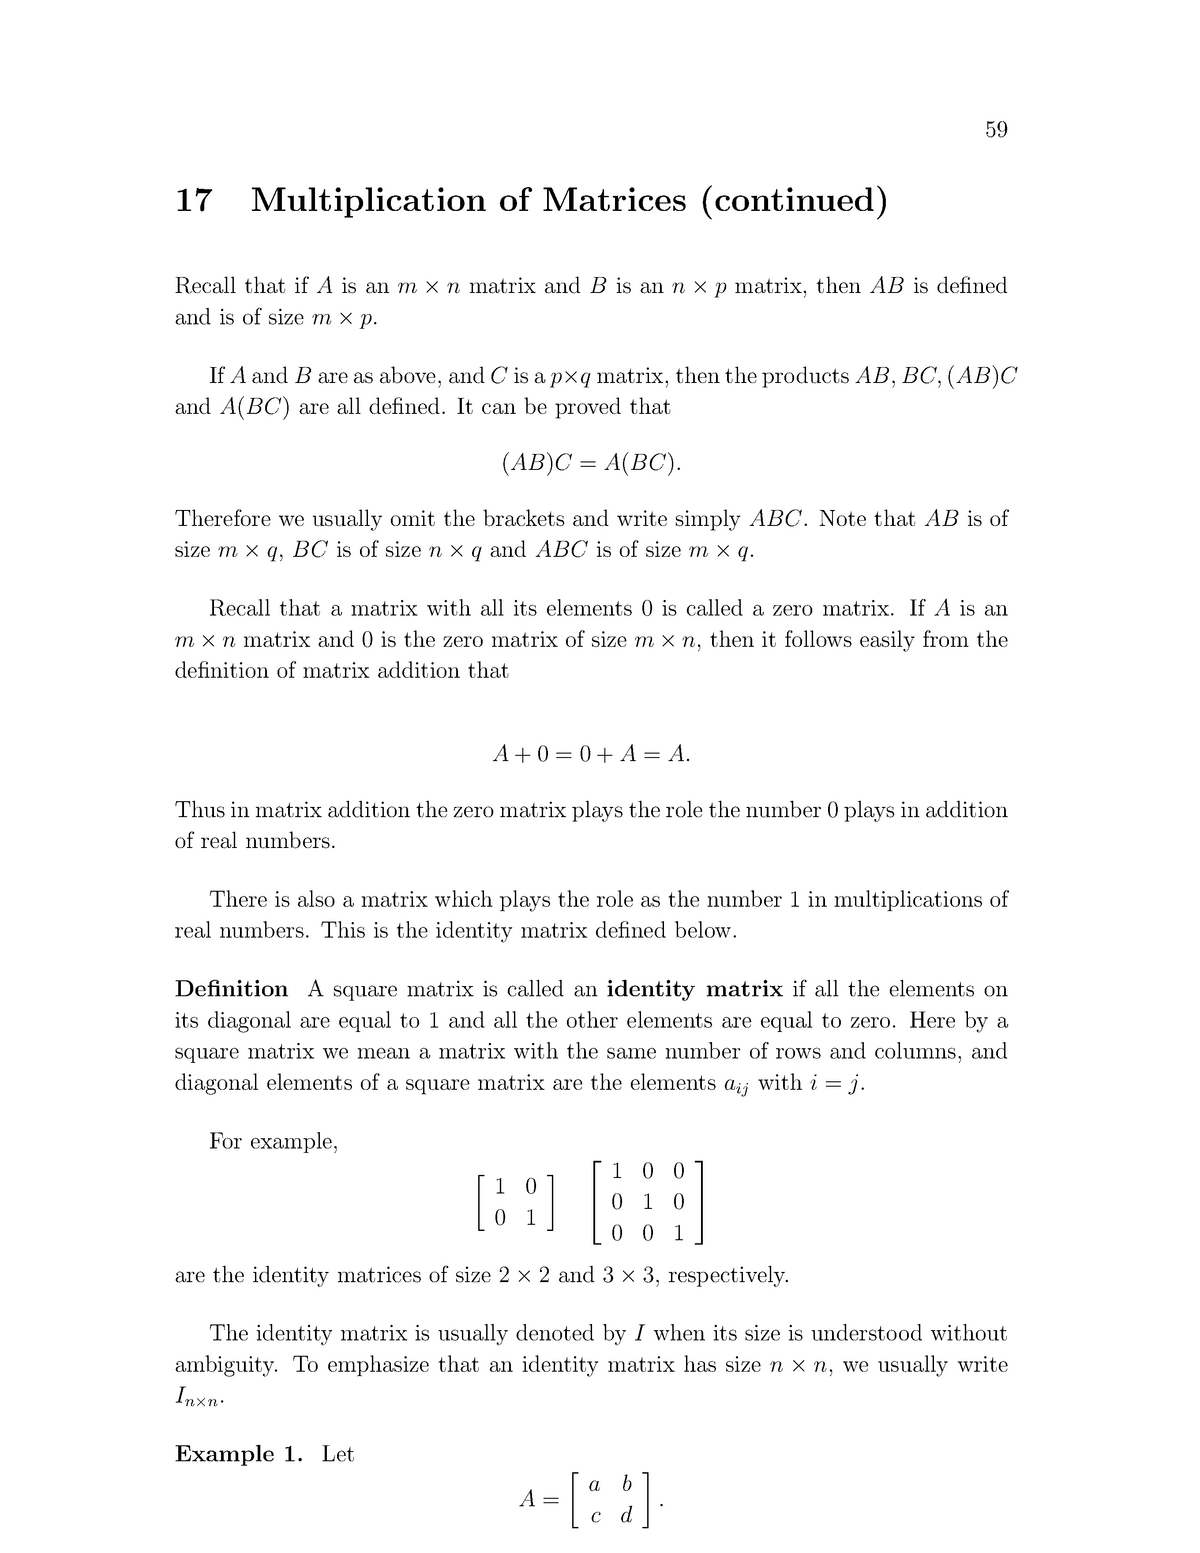 MATH120 Lecture Notes 17 - Multiplication of matrices cont